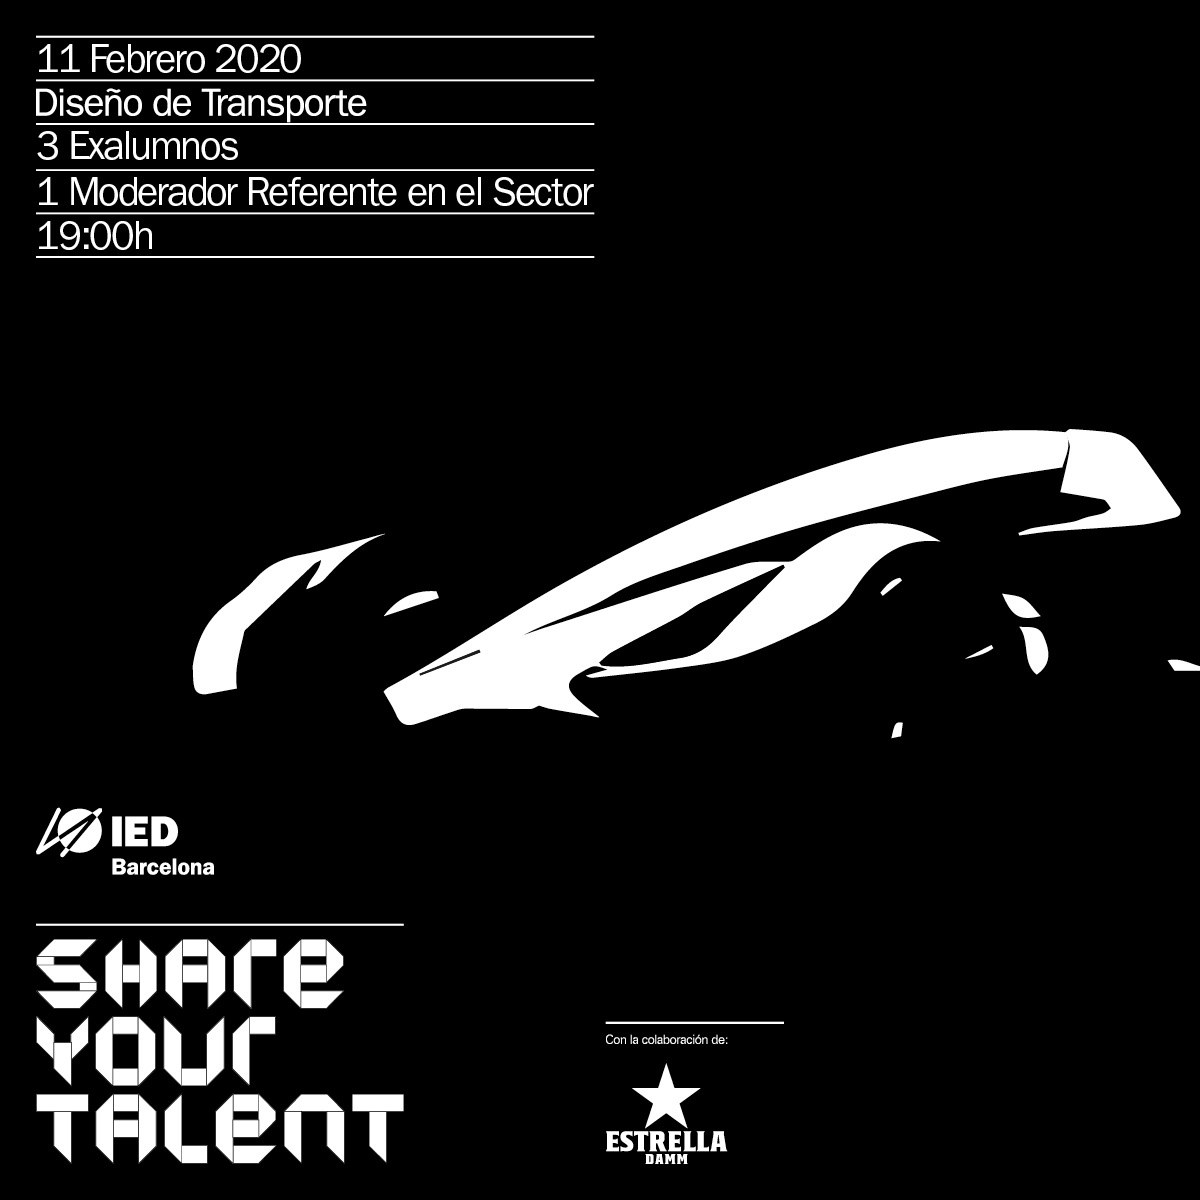 Share your talent – Movilidad